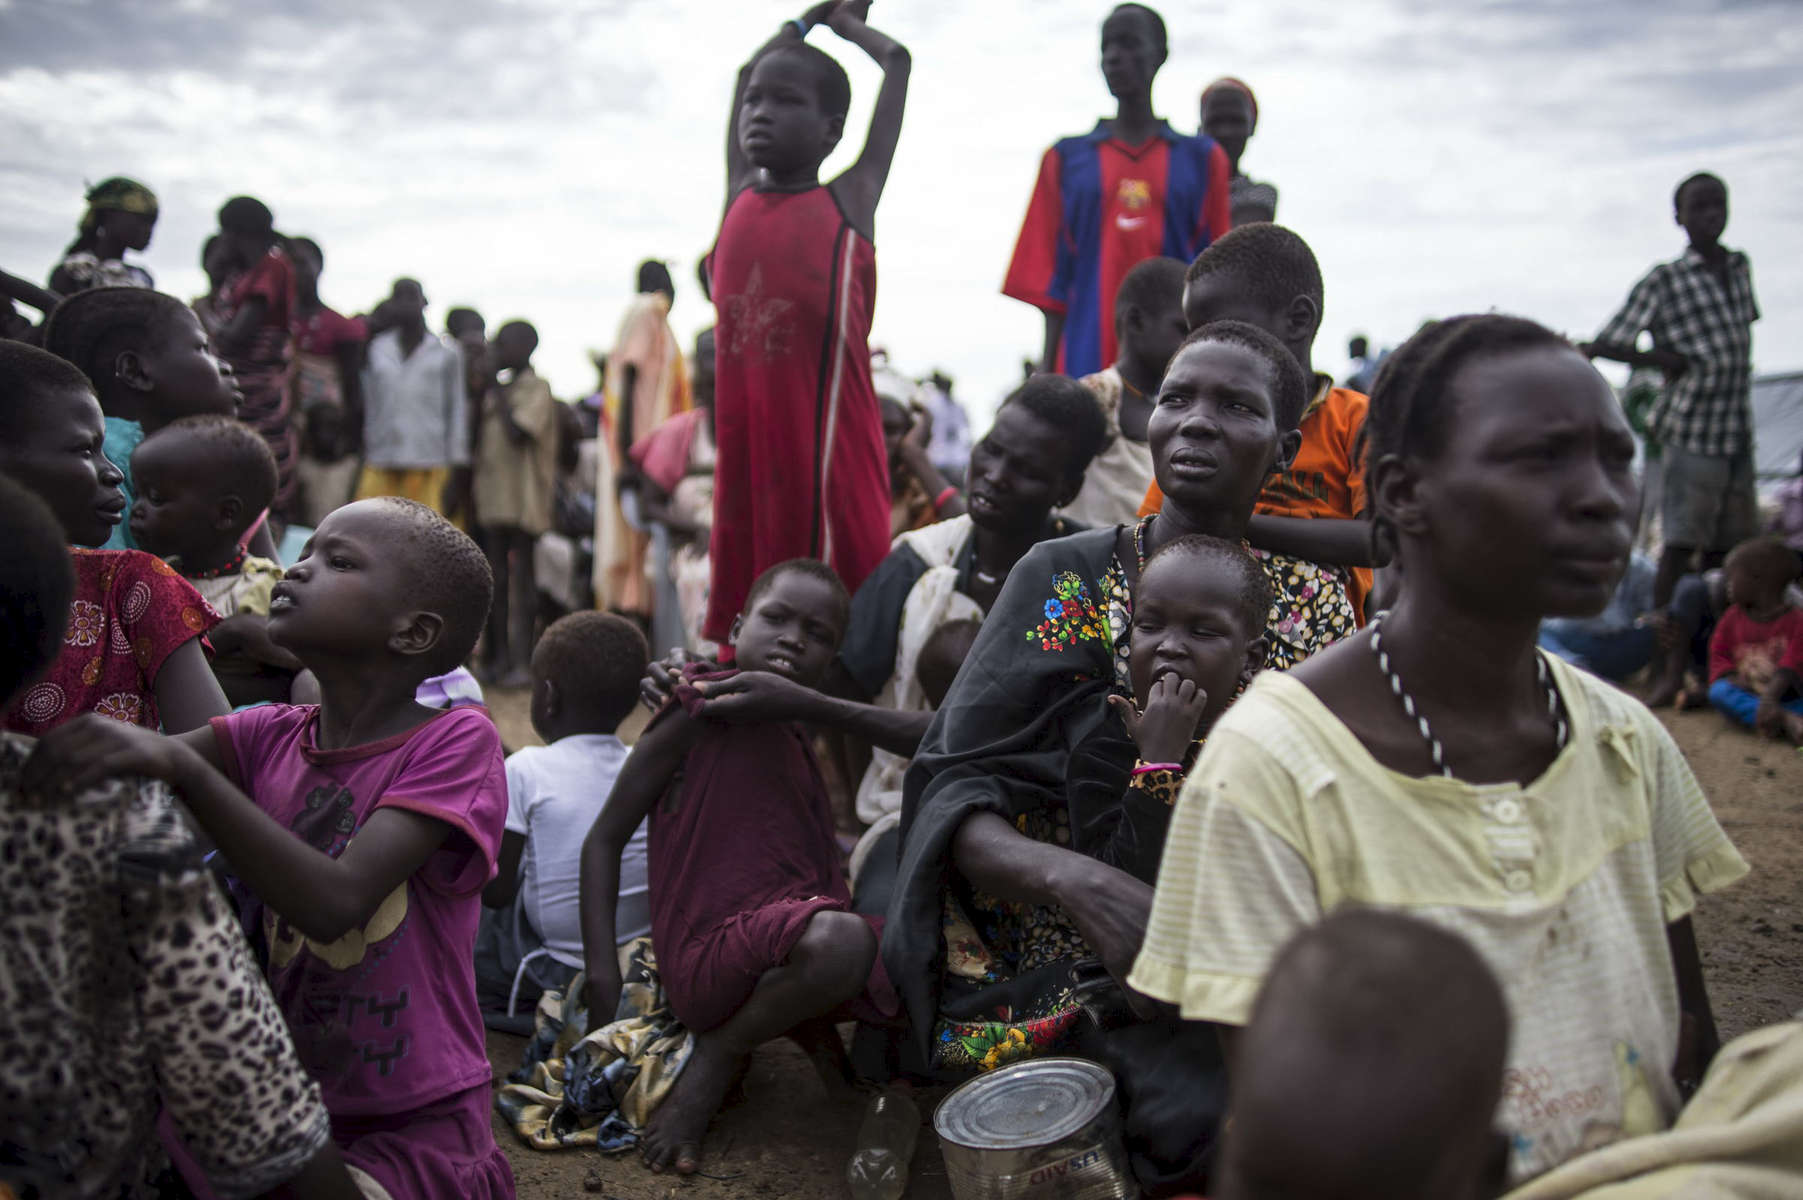 Internally displaced people wait to register for a food distribution at a camp at the base of the United Nations Mission in South Sudan in Bentiu, South Sudan, May 5, 2014.  Over twenty thousand internally displaced civlians live at the UNMISS base in Bentiu, and one million Southern Sudanese have been displaced from their homes across the country as the civil war rages in the country, pitting ethnic Nu'er against Dinka.  Many civilians have lost cattle, can not return to their farms to  plant crops to harvest the next season, and according to the United Nations official coordinating humanitarian aid in South Sudan, if the civil war doesn't stop, and the country does not receive international aid, South Sudan will face the worst starvation in Africa since the 1980s, when hundreds of thousands of people died in Ethiopia's famine. (Credit: Lynsey Addario)